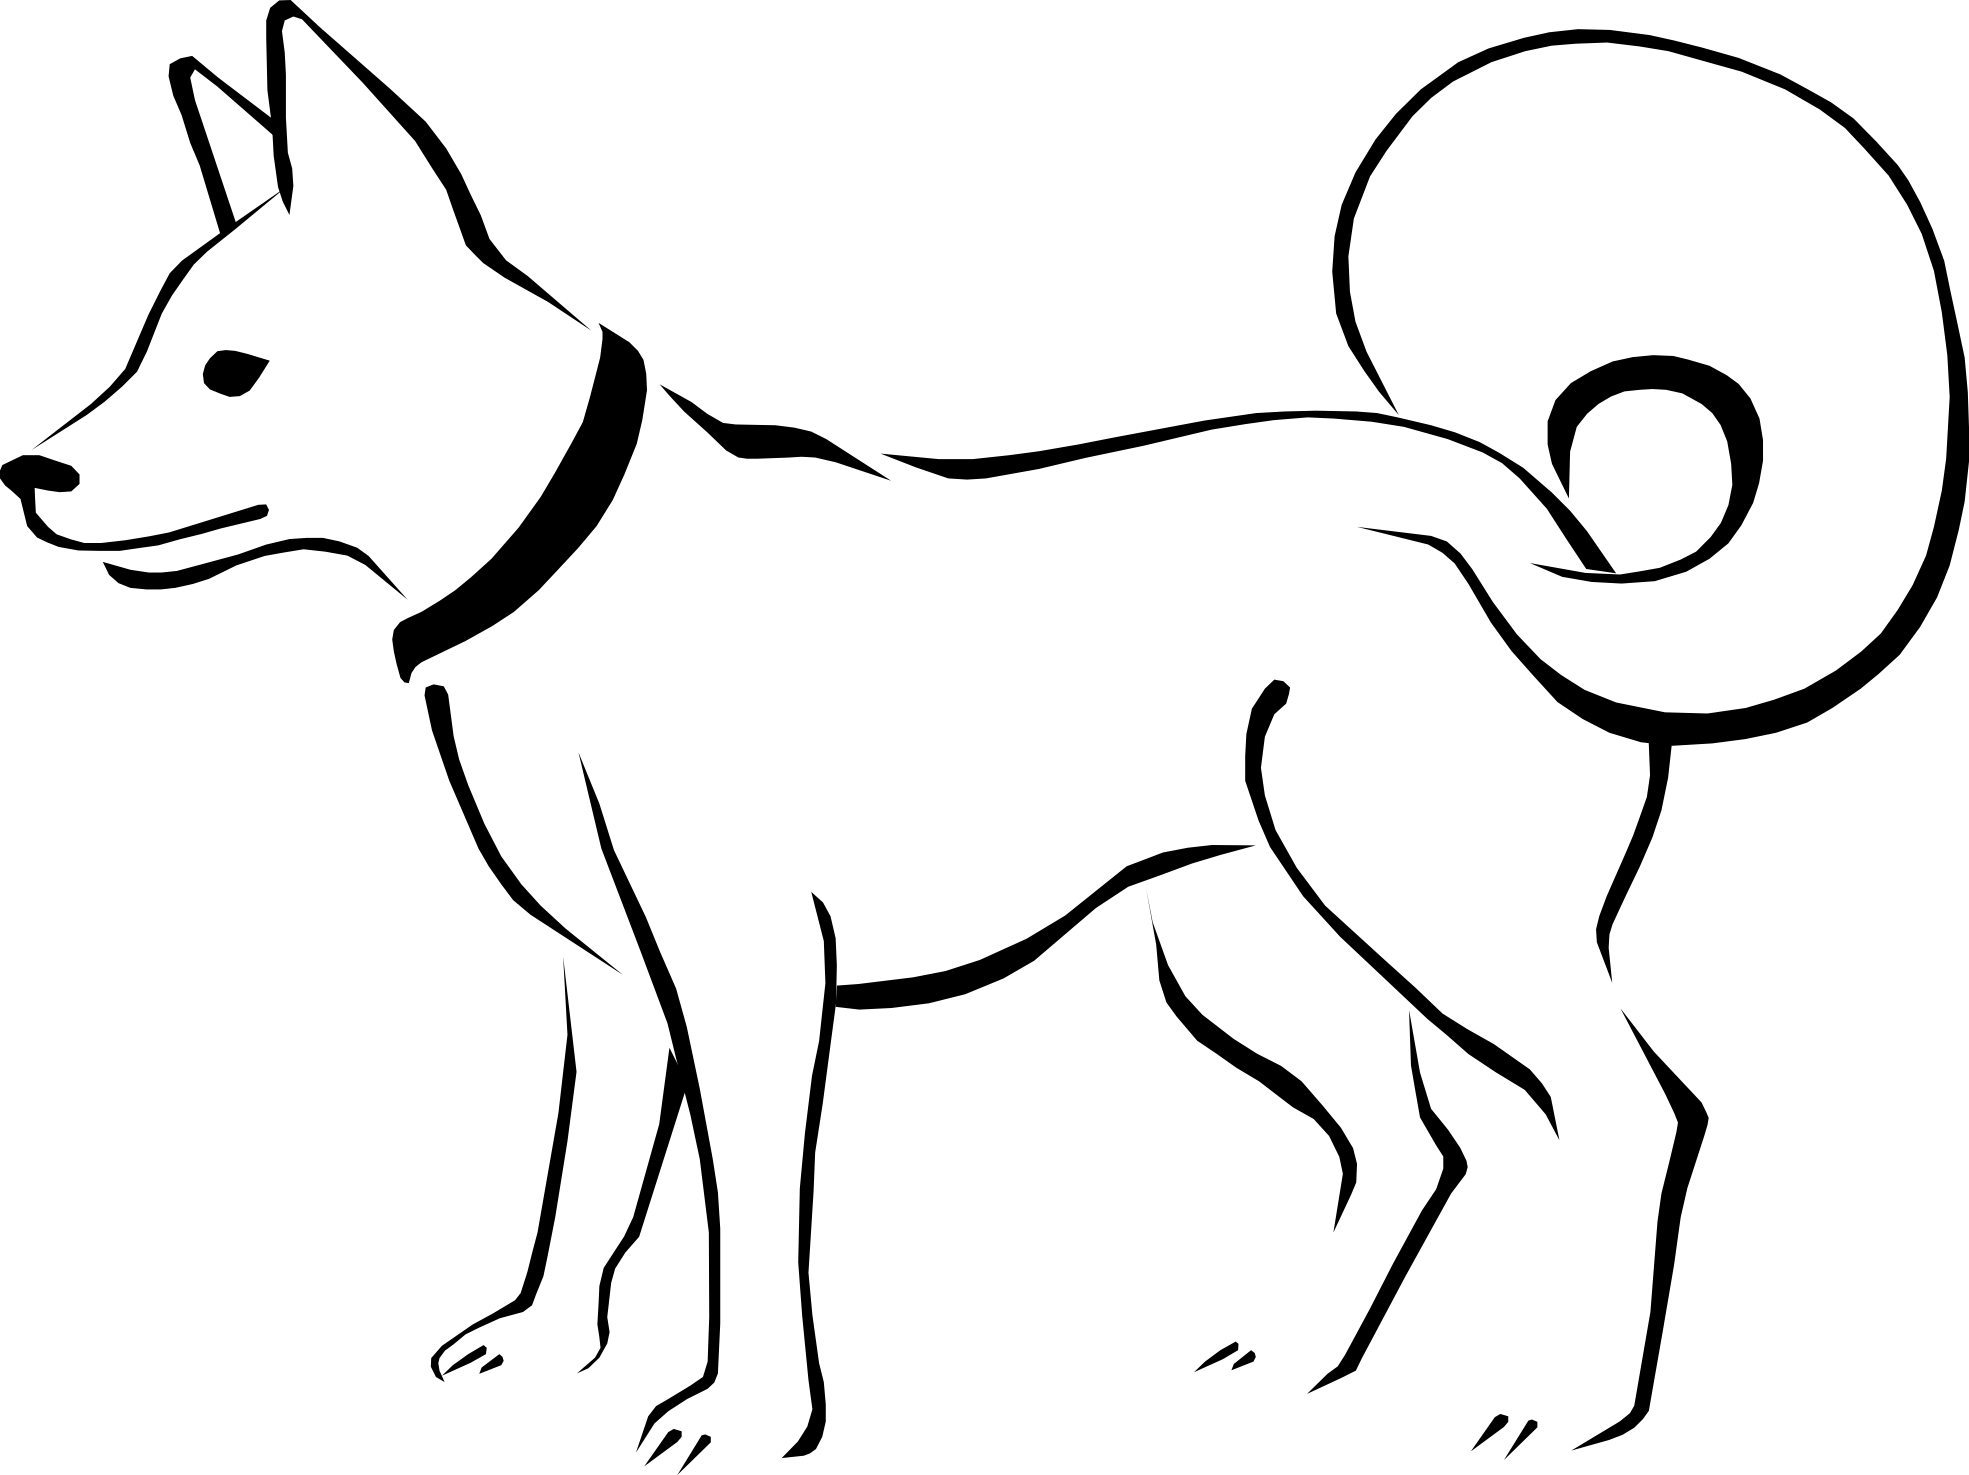 Clip art whiteblack blackandwhitedogclipartblackandwhiteblackandwhitedog. Dog bowl clipart black and white